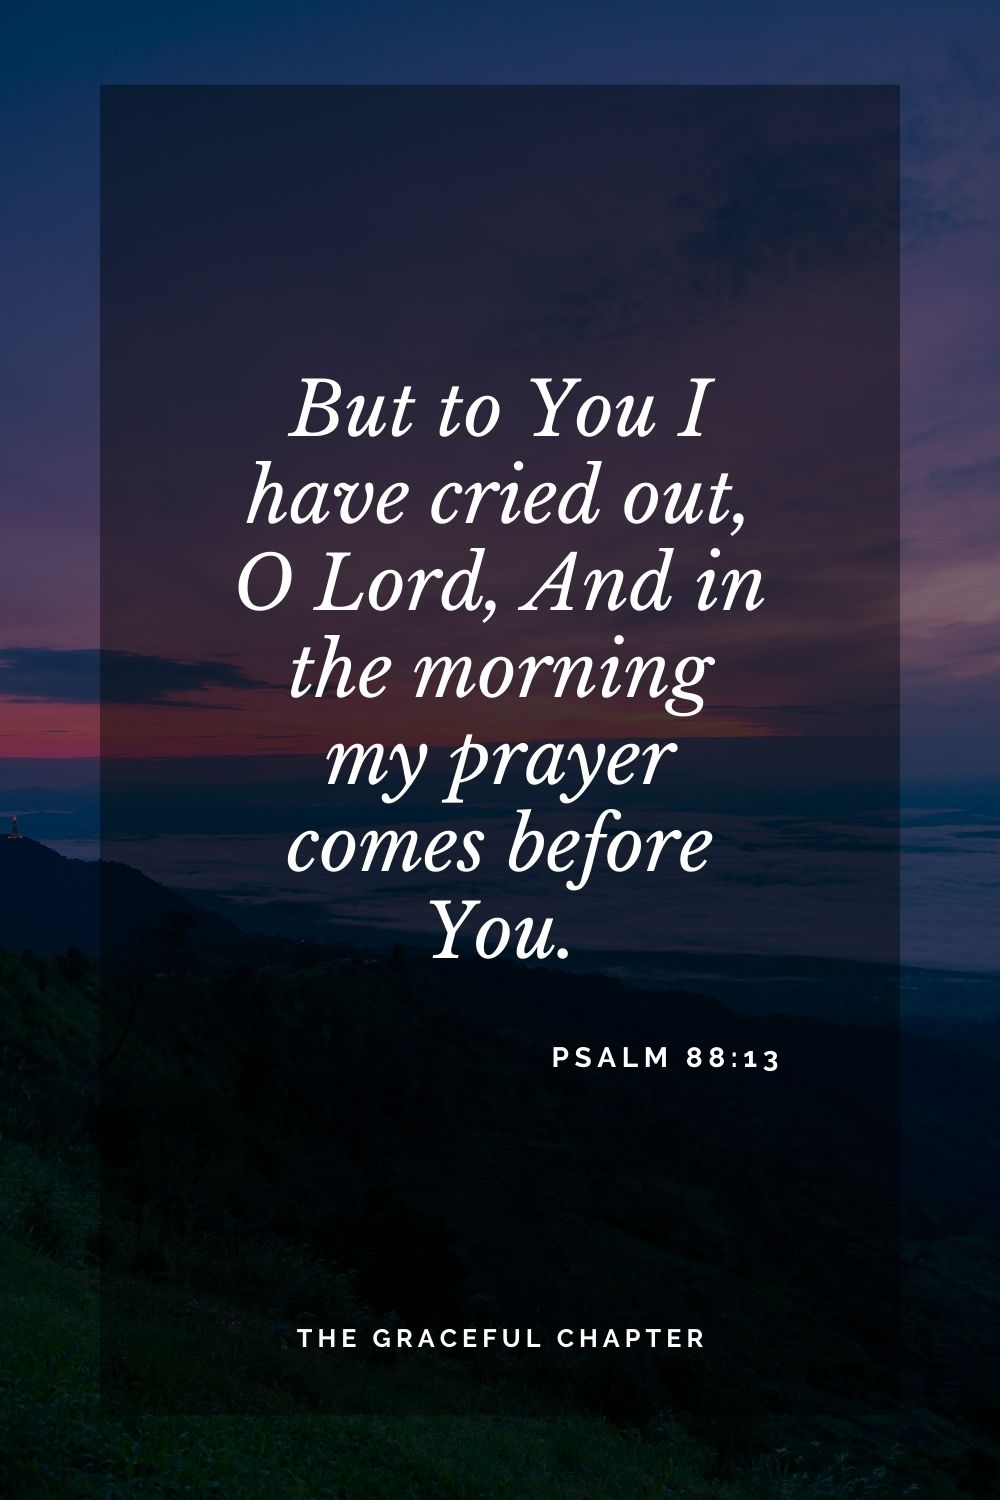 But to You I have cried out, O Lord, And in the morning my prayer comes before You. Psalm 88:13